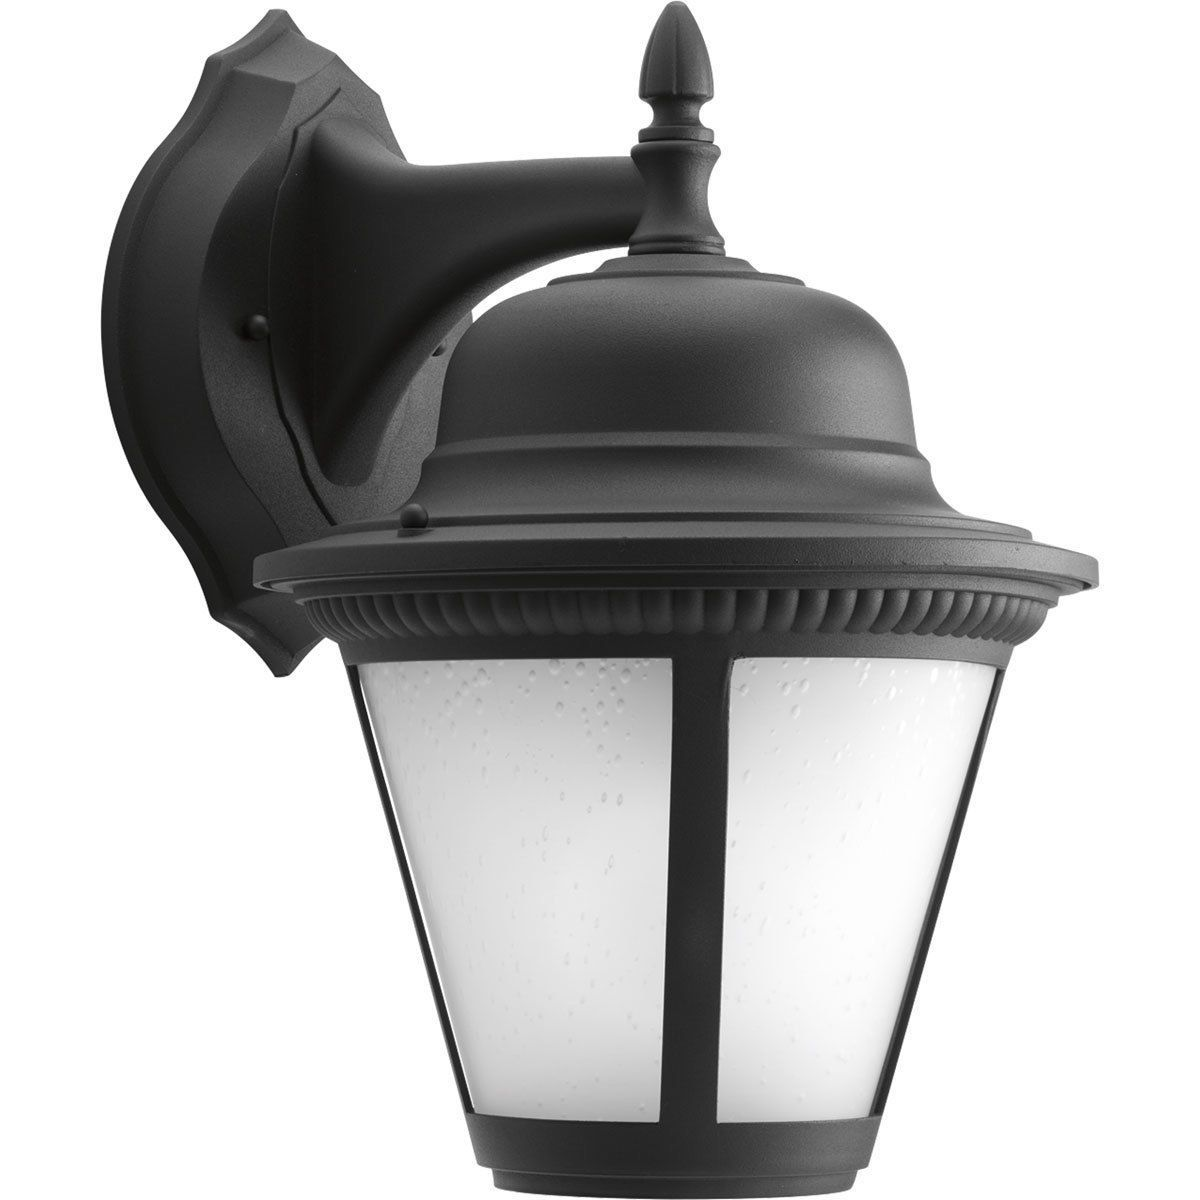 Progress Lighting P5864-3130k9 Westport LED 1-light 11-inch Wall Lantern with AC LED Module